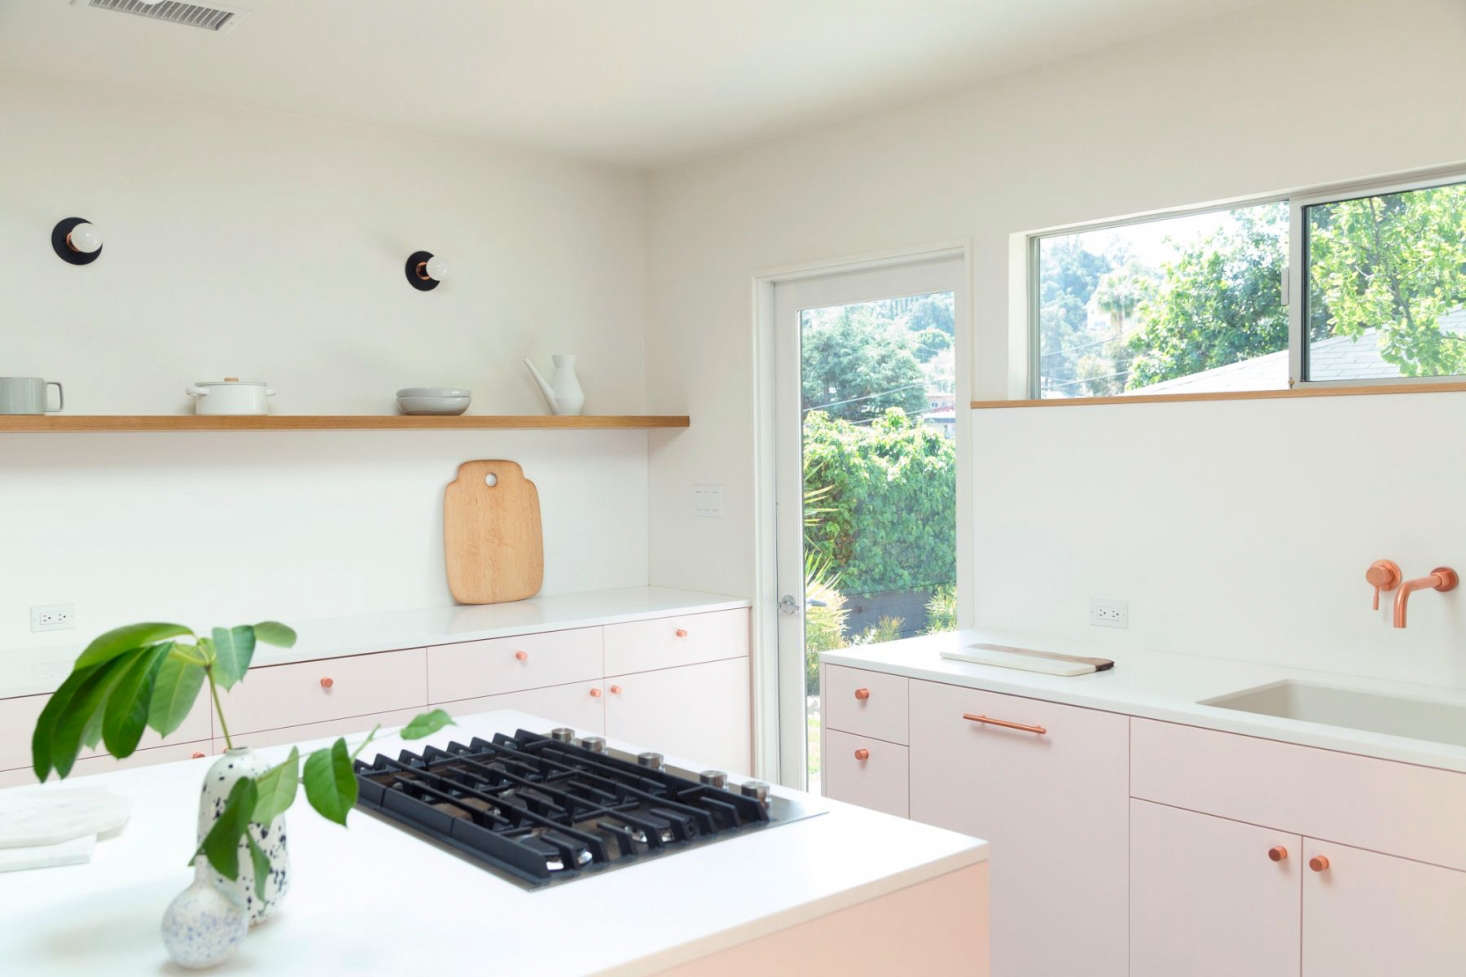 Annie Ritz And Daniel Rabin Entered The Kitchen Of Their Silver Lake Project In Los Angeles